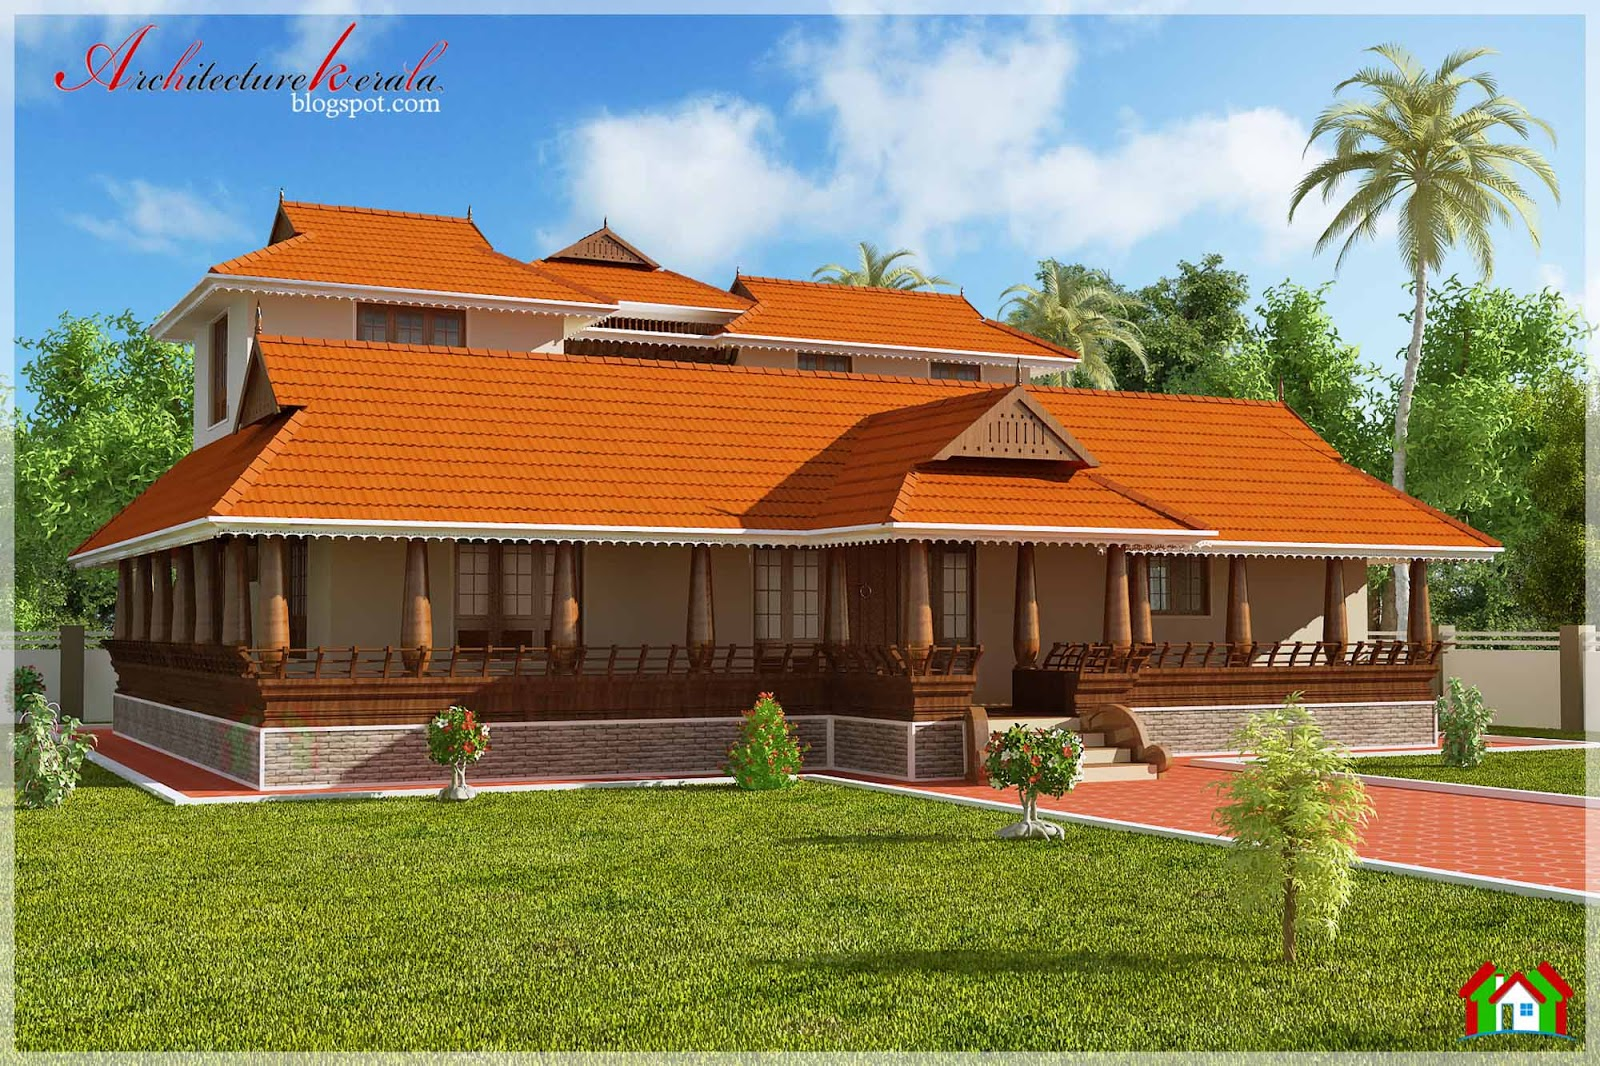 Architecture Design Kerala Model delighful architecture design kerala model villa at 3000 sq ft